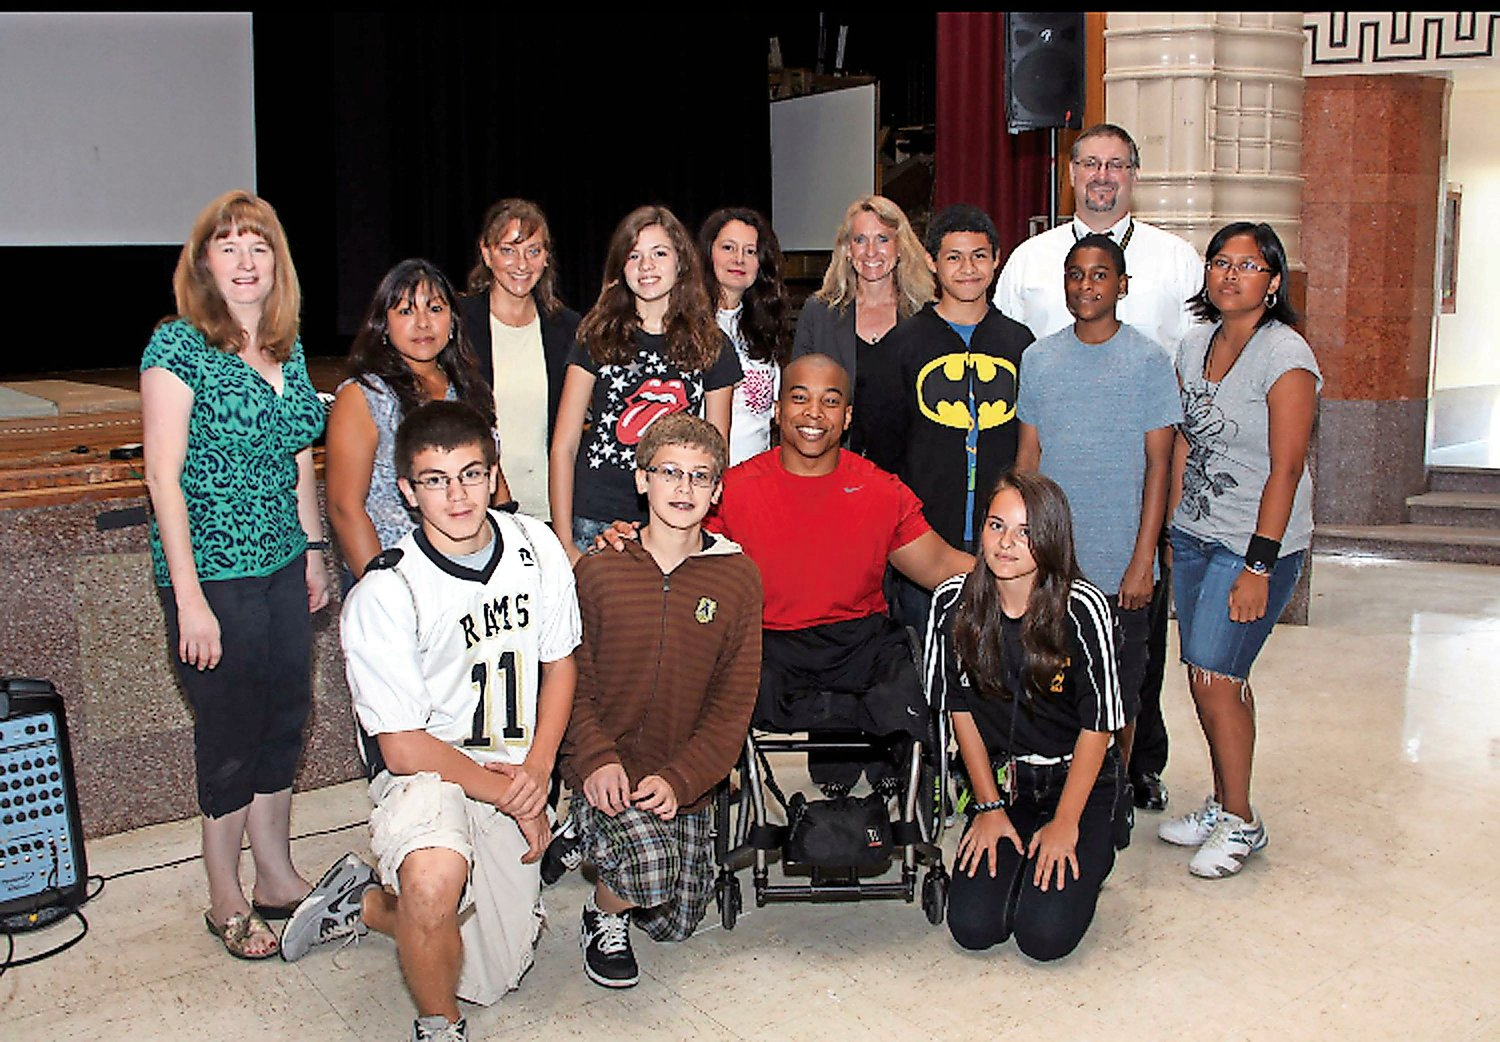 In 2012, Lee, top row, fifth from right, invited Paralympian wrestler and motivational speaker Rohan Murphy to speak to students at the high school.